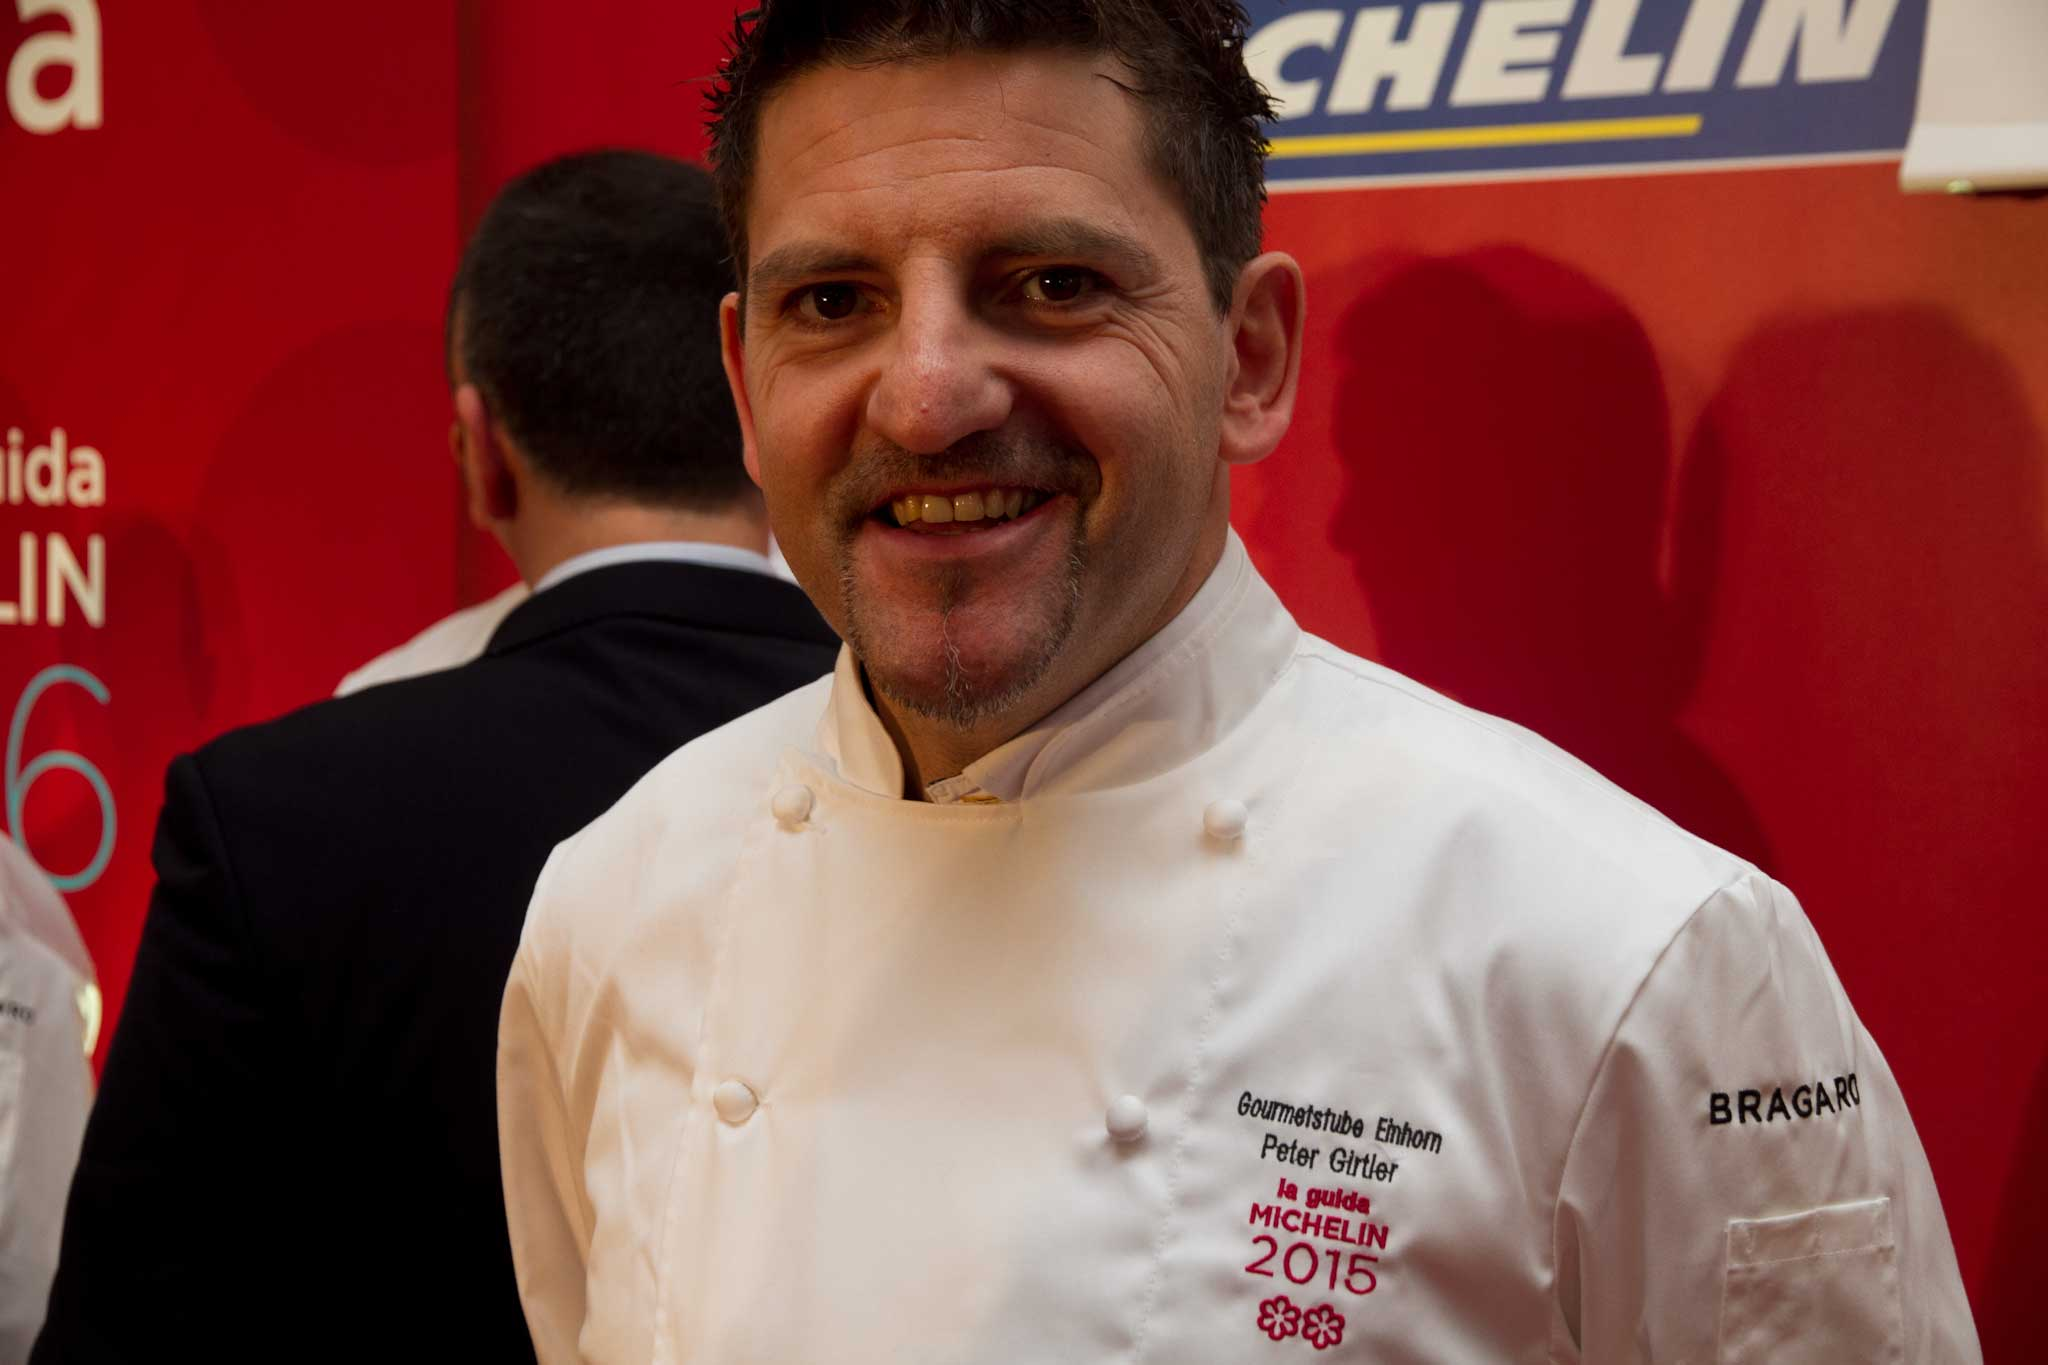 Peter Girtler chef